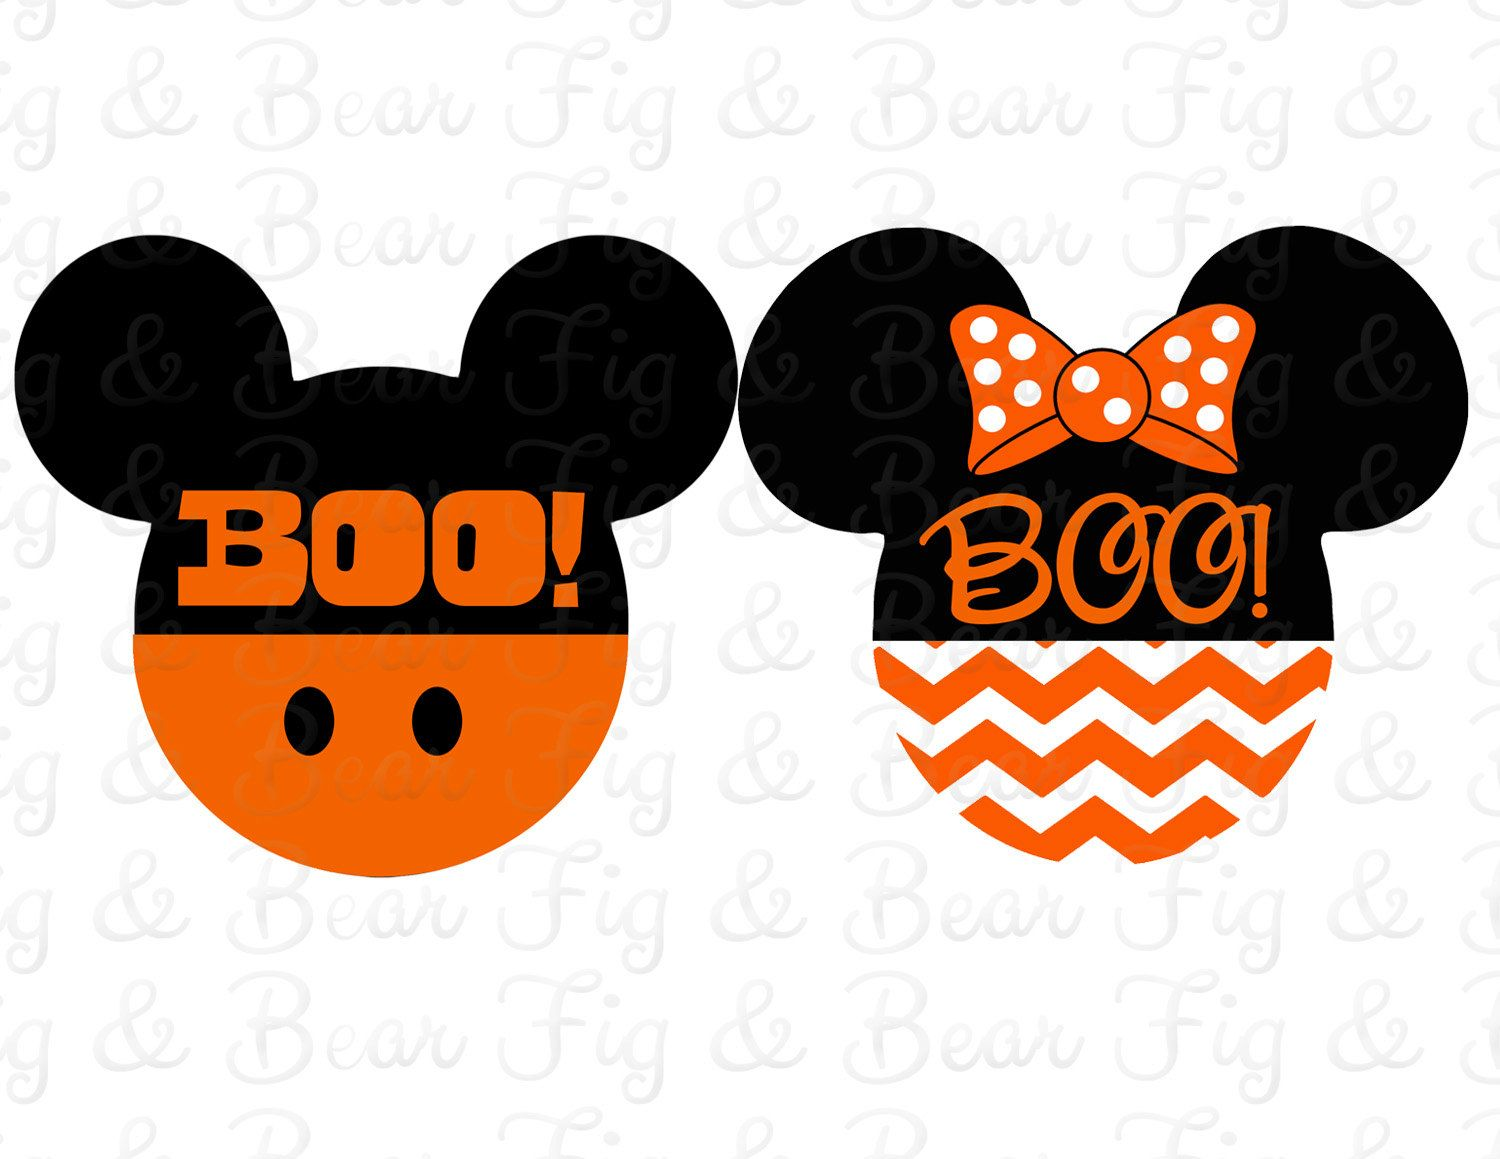 disney family shirts halloween iron on transfers mickey mouse and minnie mouse personalized free by figandbear on etsy null - Disney Halloween Photos